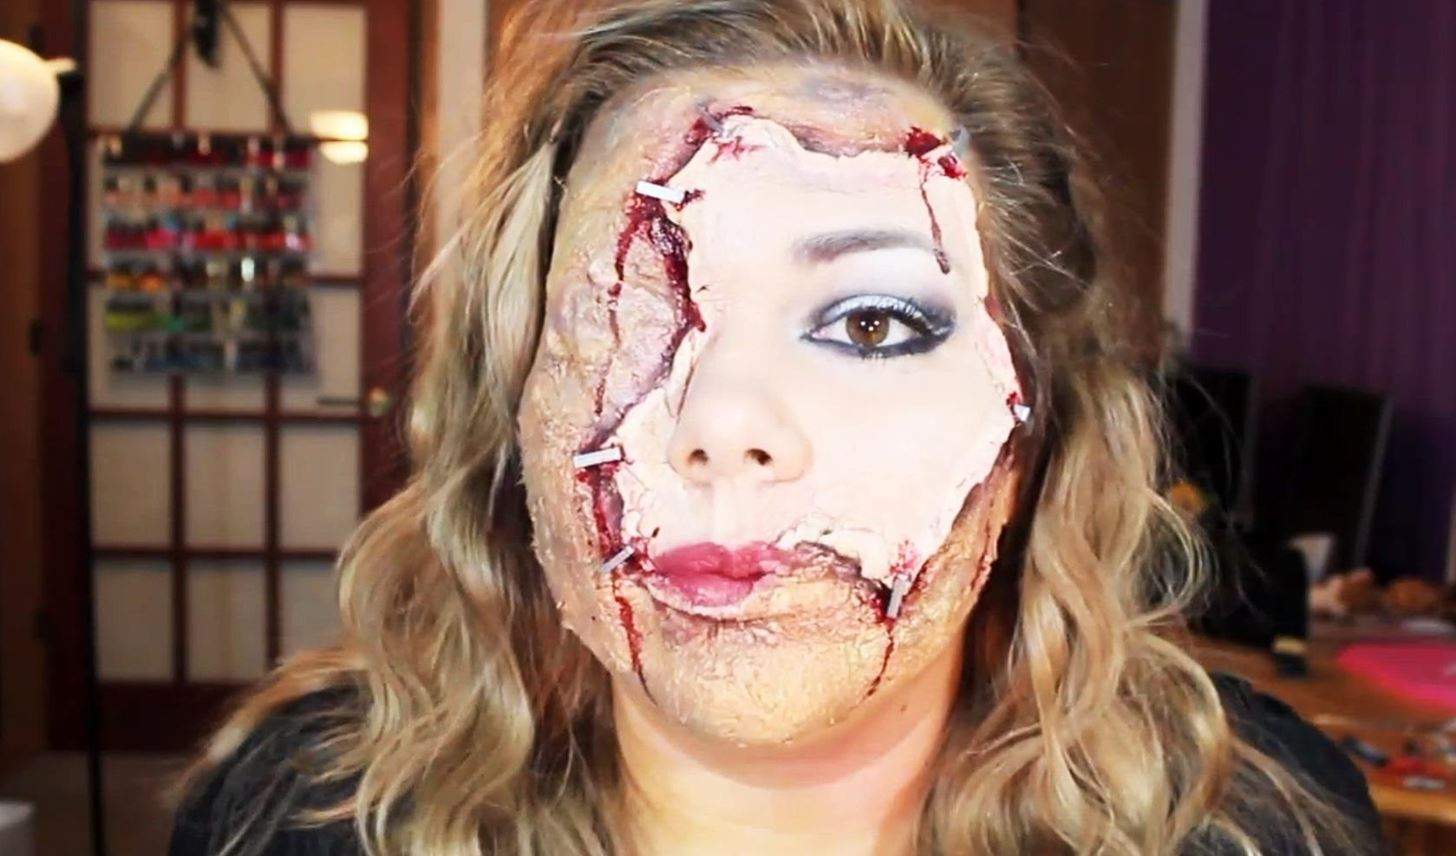 Horrifying Halloween Makeup: DIY Scarred Face with Flayed Human Skin Mask